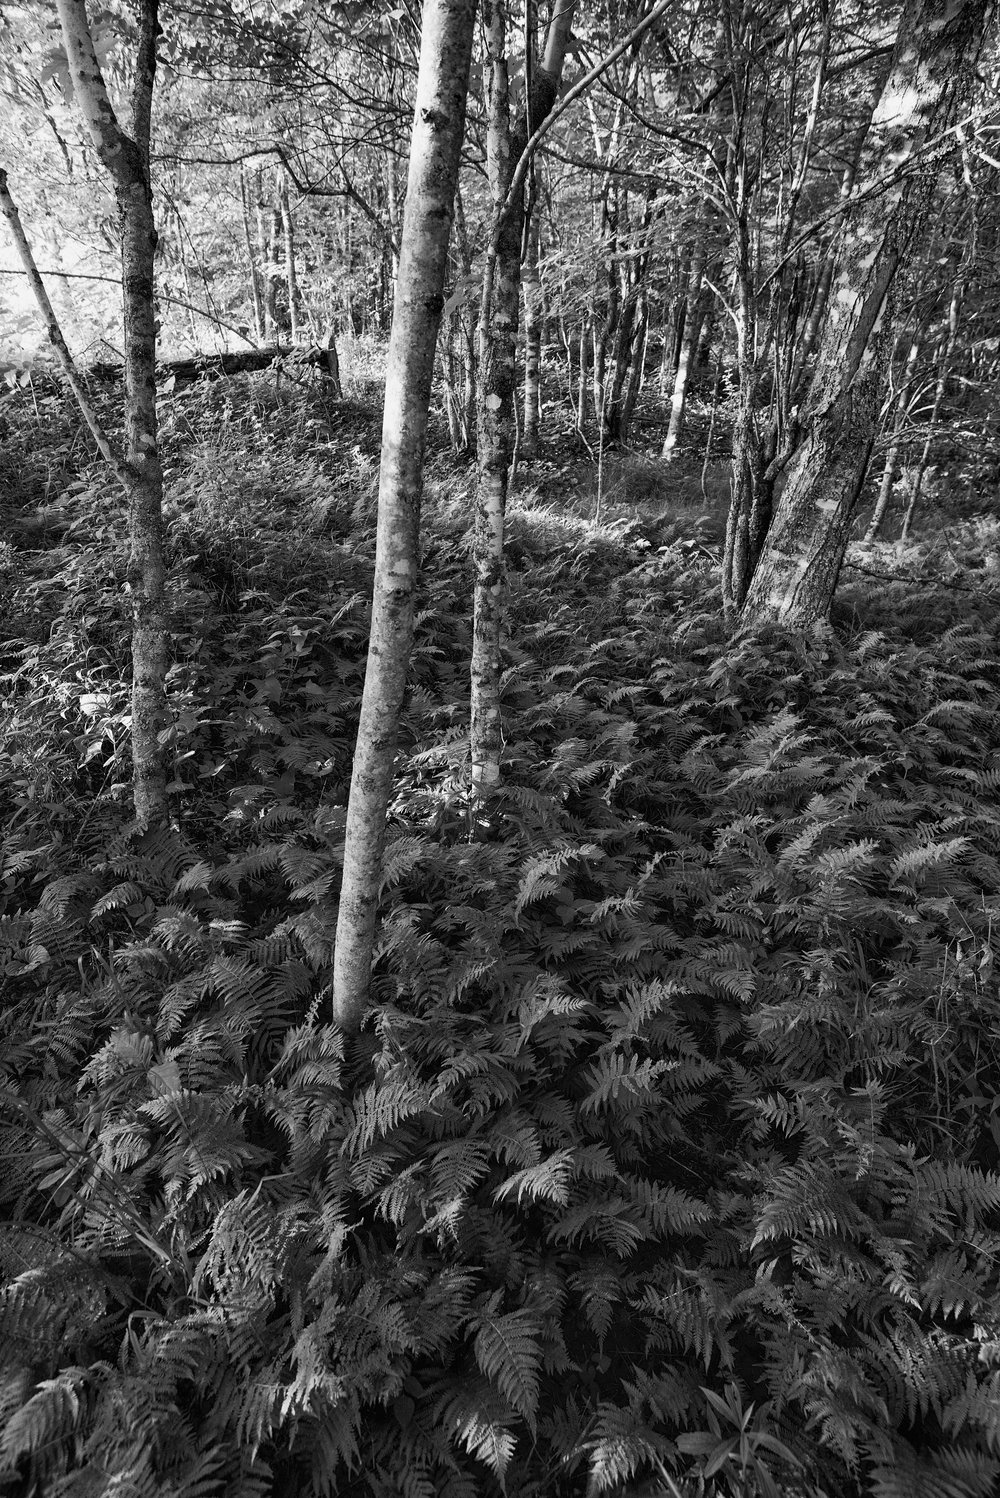 Ferns and Forest Floor